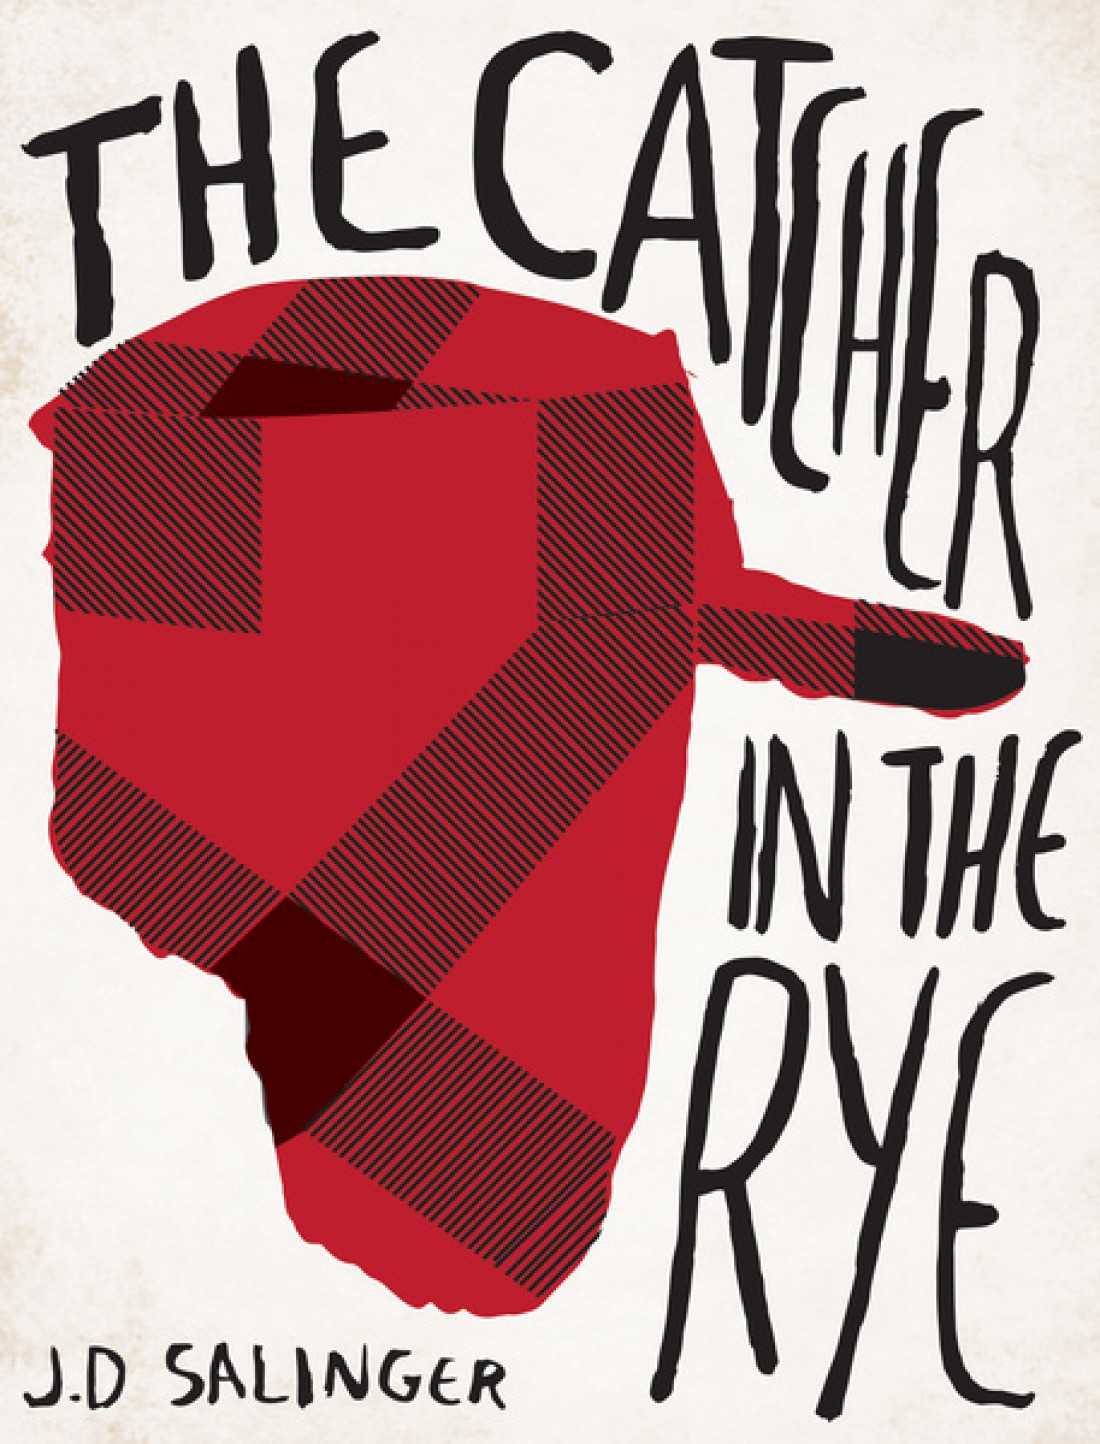 an analysis of reaching our dreams as portrayed in holden caulfield in jd salingers the catcher in t Catcher in the rye thesis statements and important quotes catcher in the rye's main character, holden character analysis of holden caufield our.